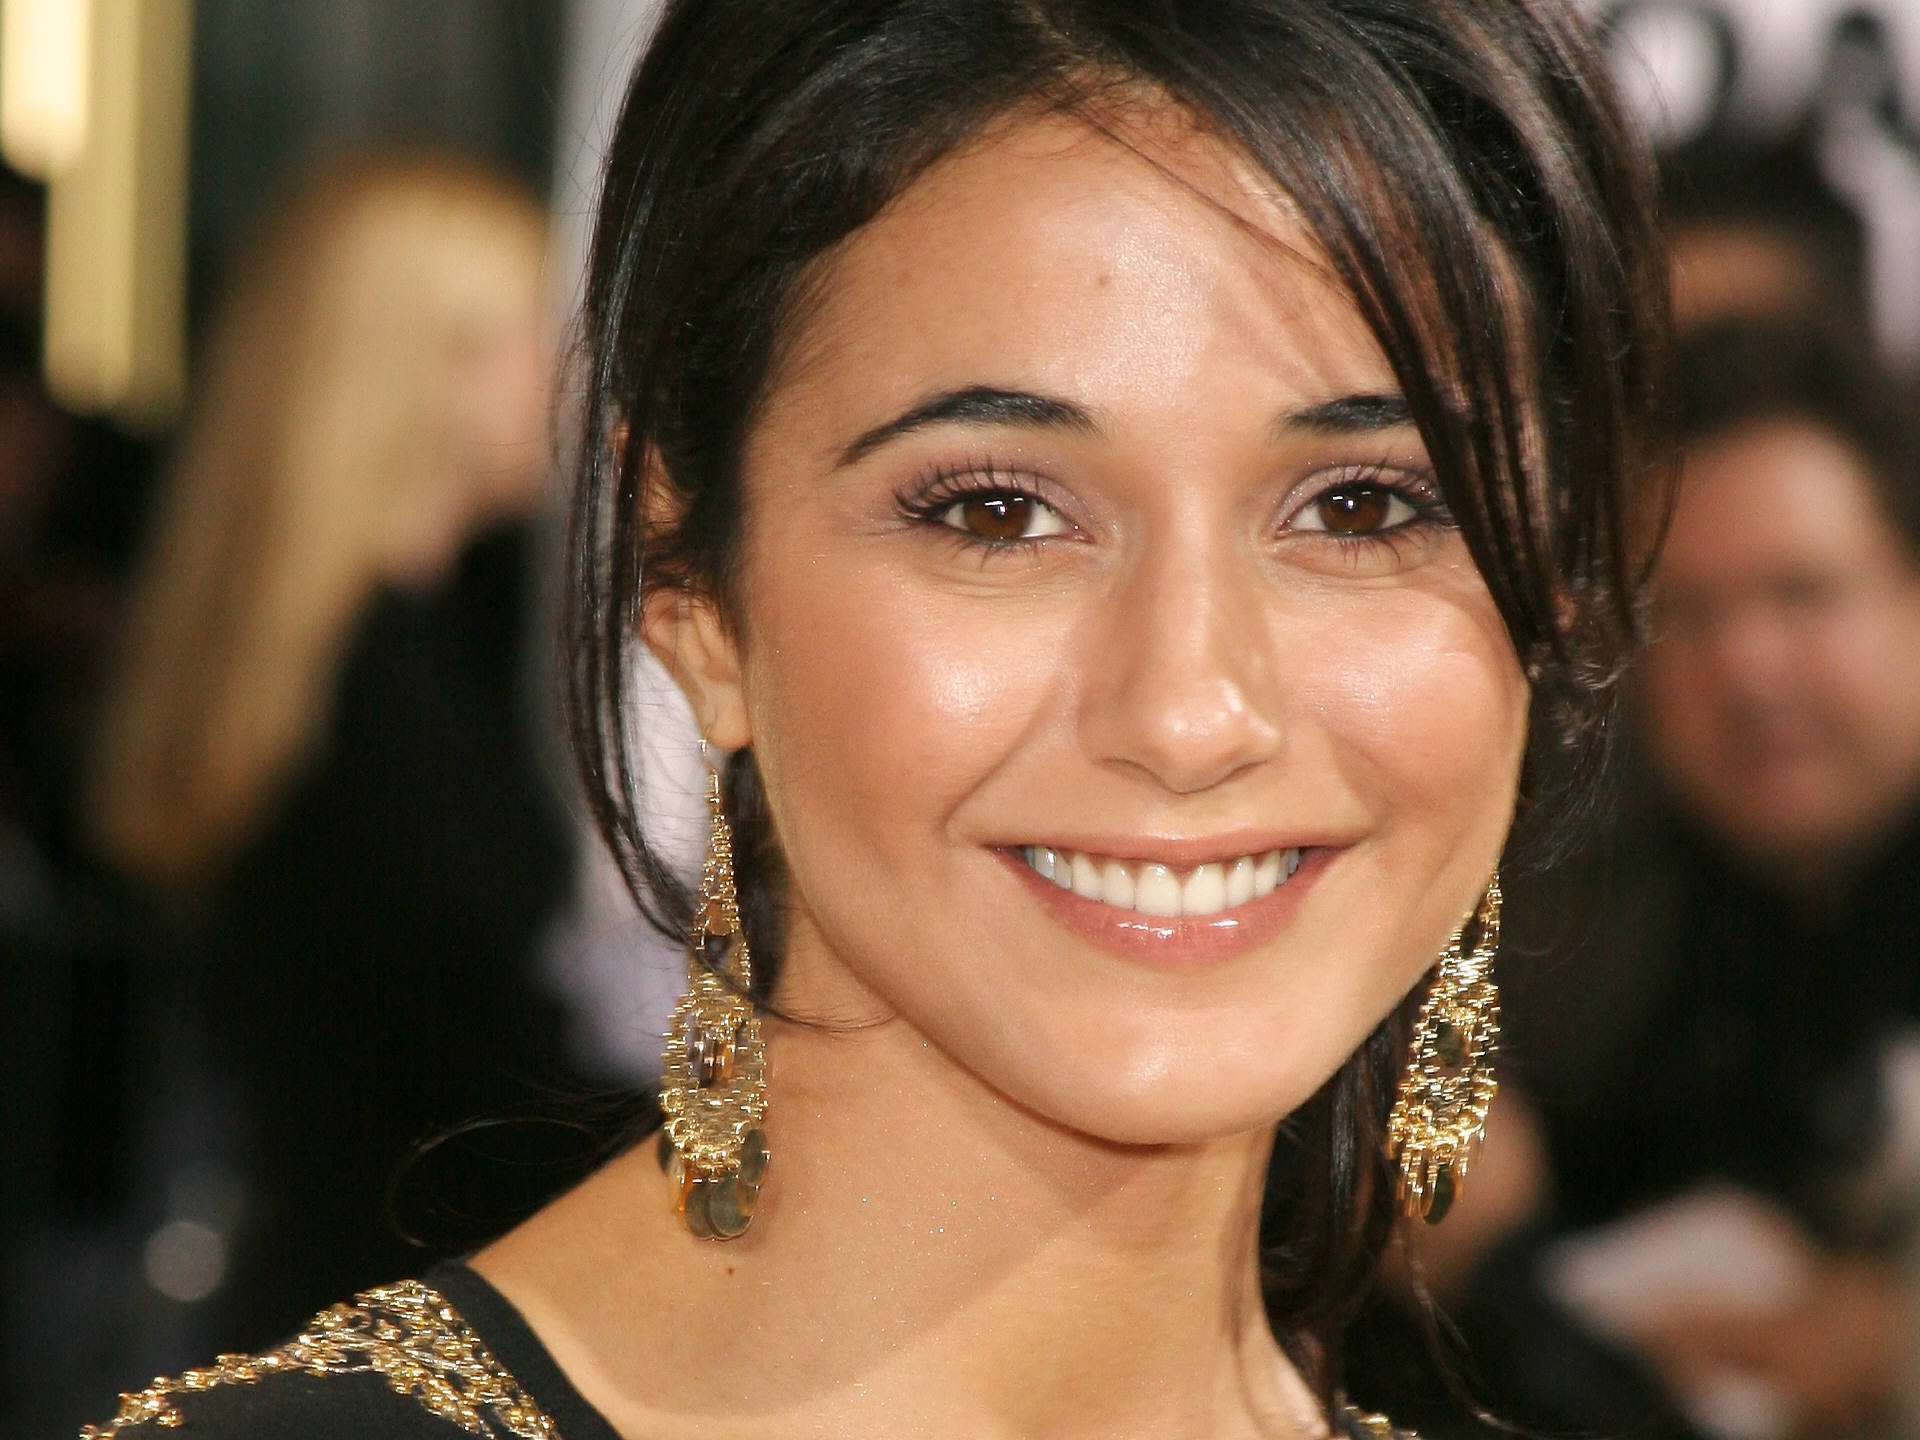 emmanuelle chriqui smile wallpaper pictures 52807